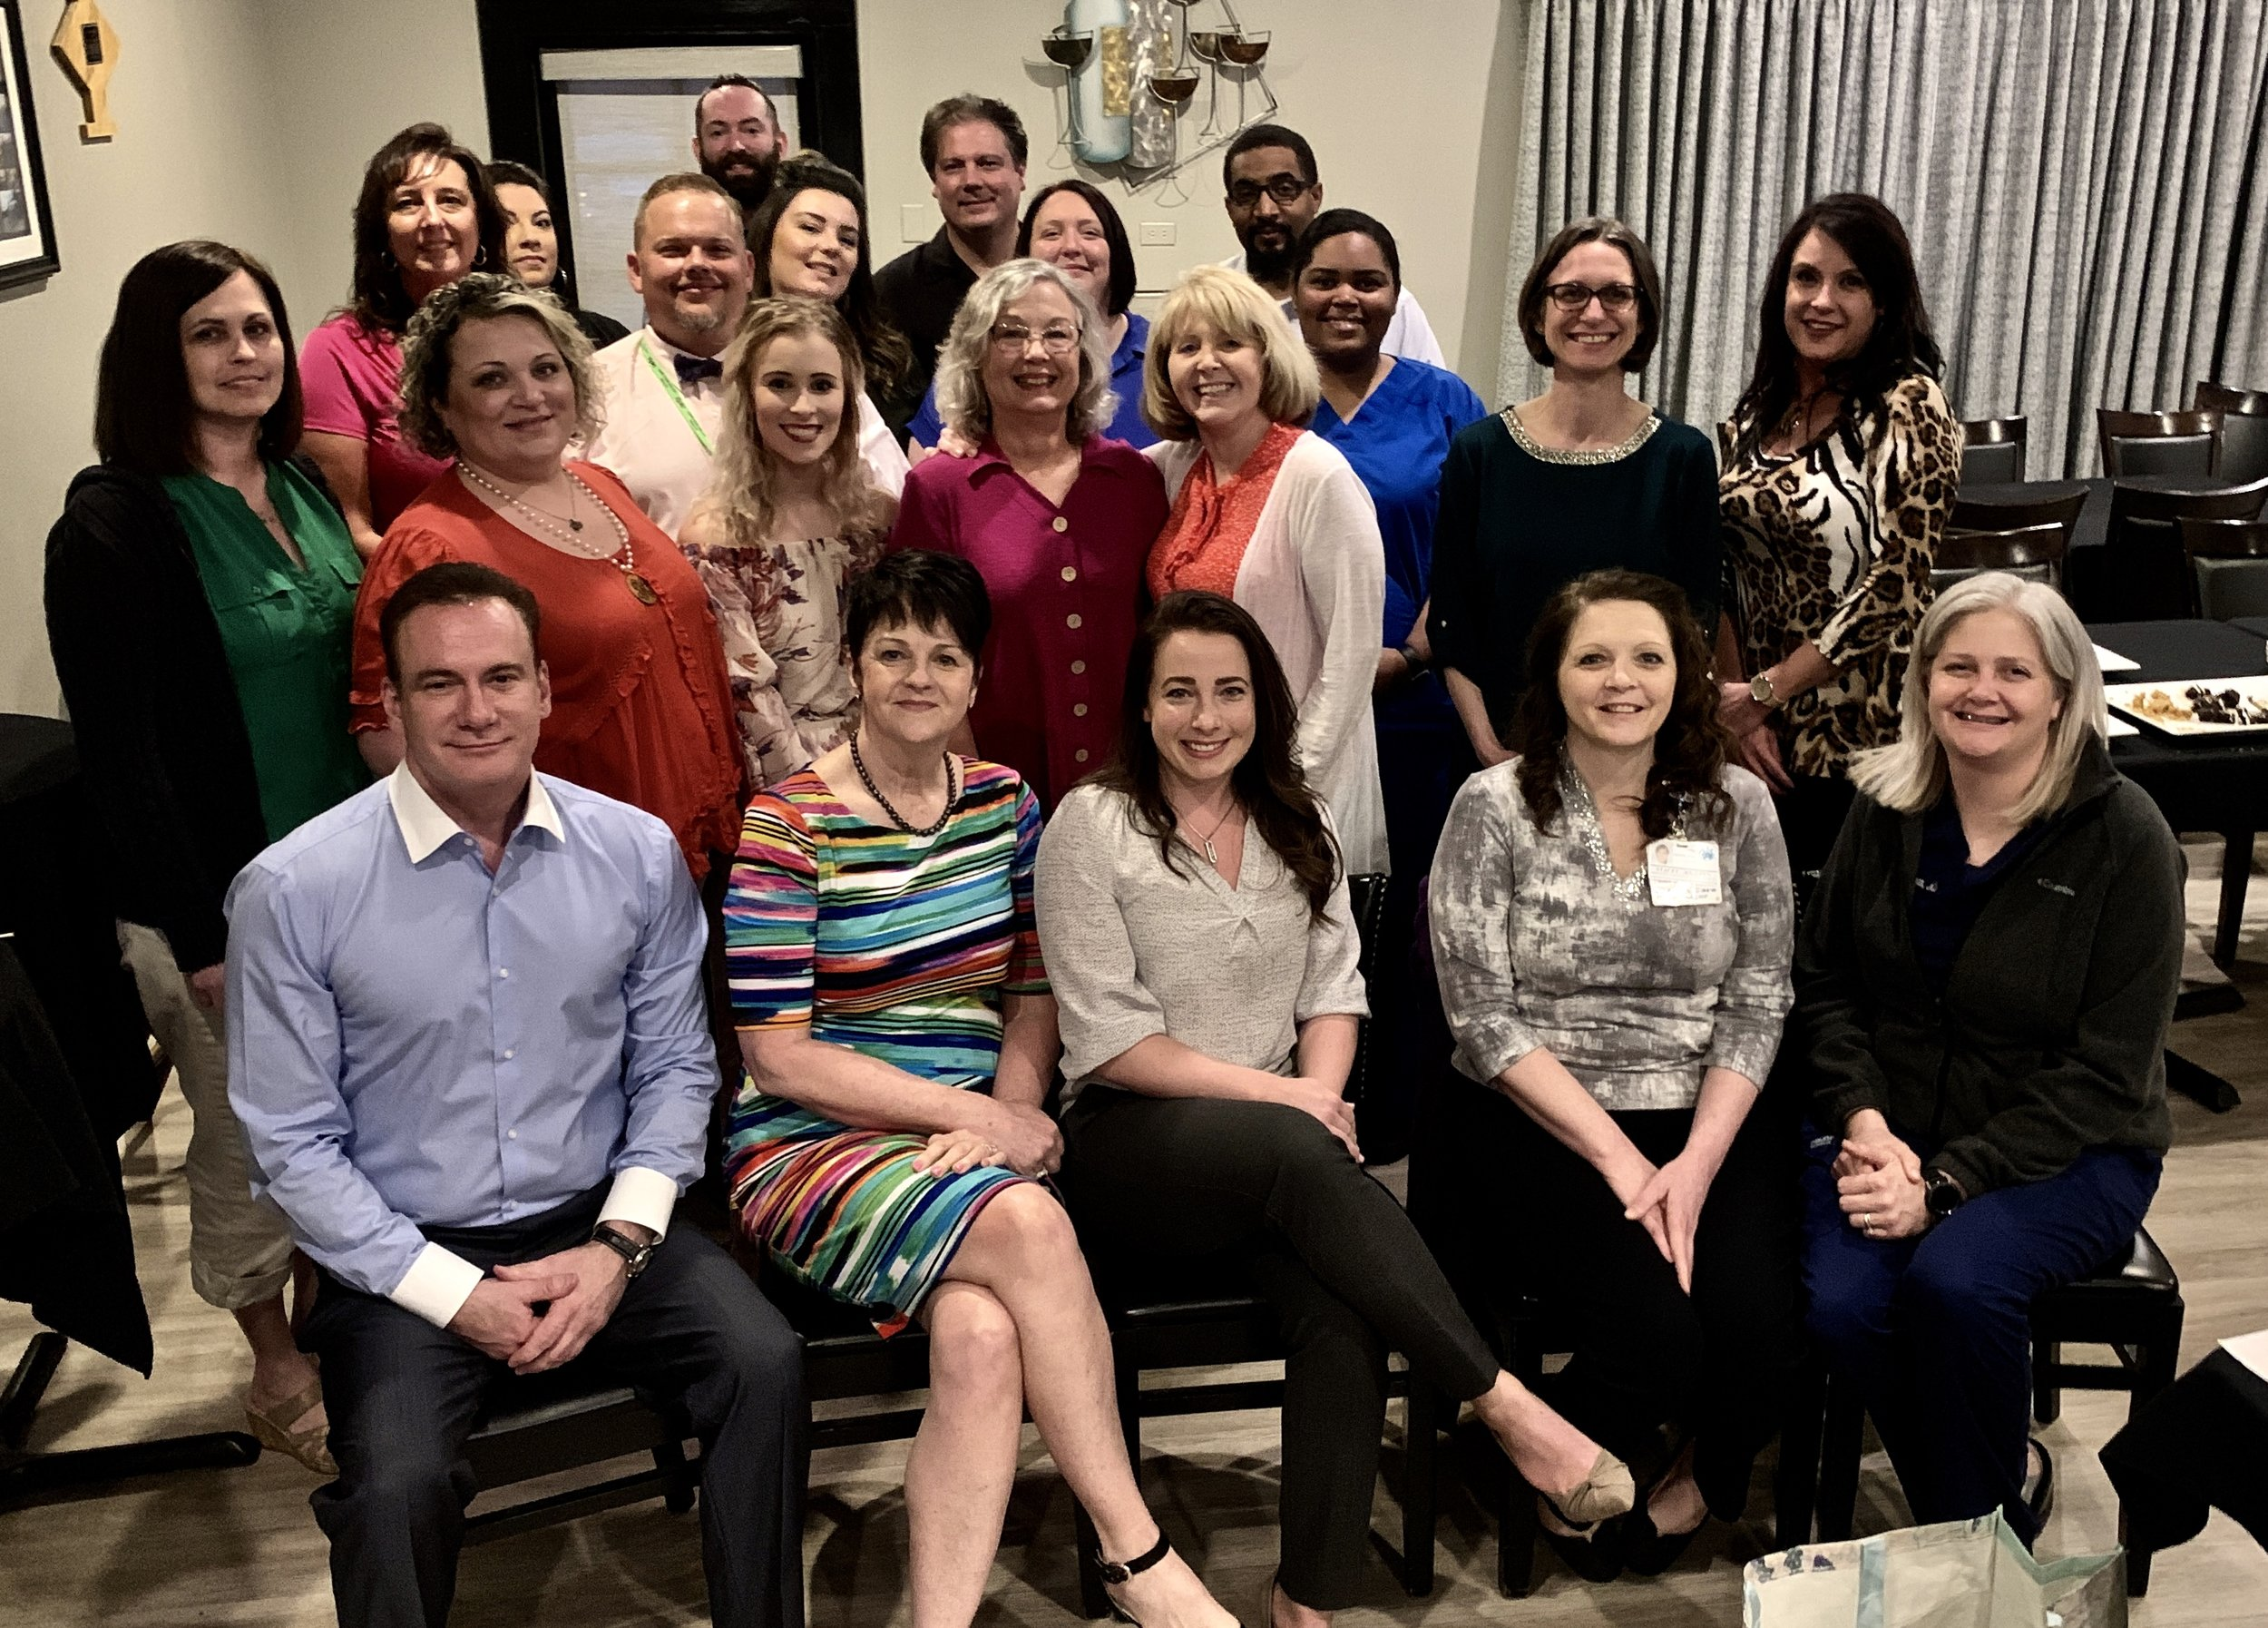 Dr. Zappa and the CFV ED leadership team at a recent ED retreat where they enjoyed an inspiring evening of celebration, bonding, and personal growth.